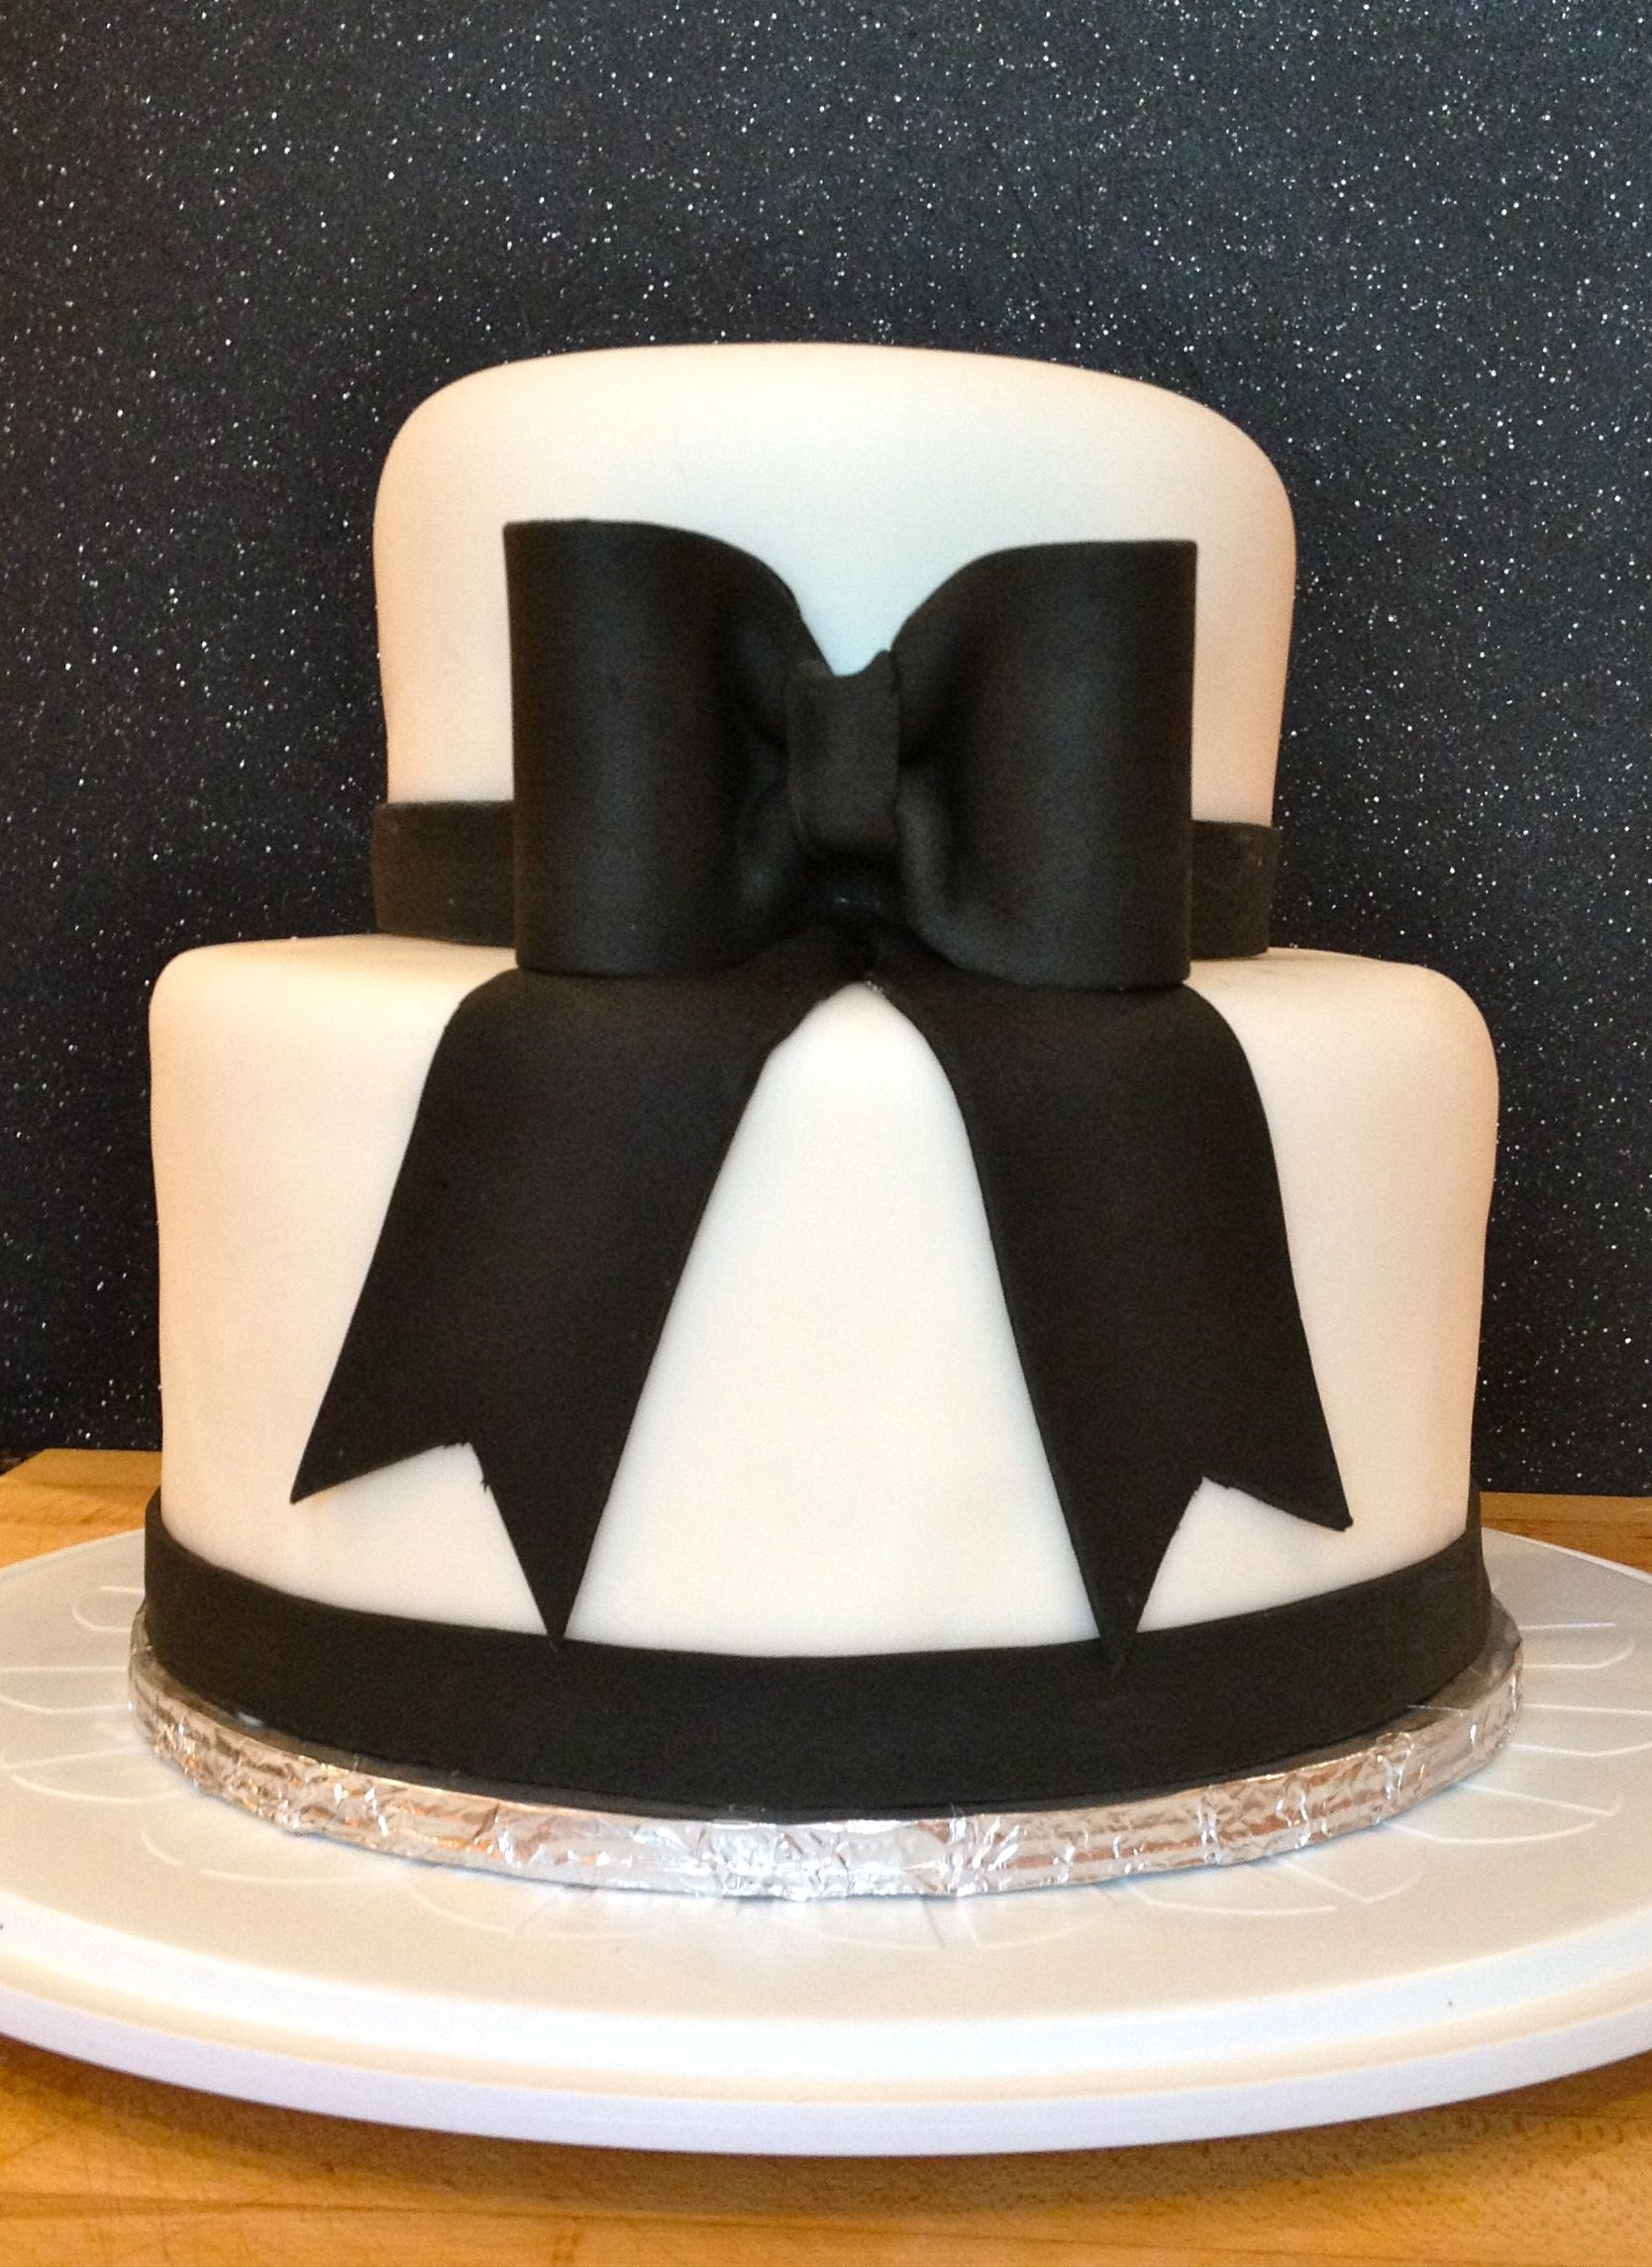 Small Black And White Wedding Cake This Cake Made Its Debut At A